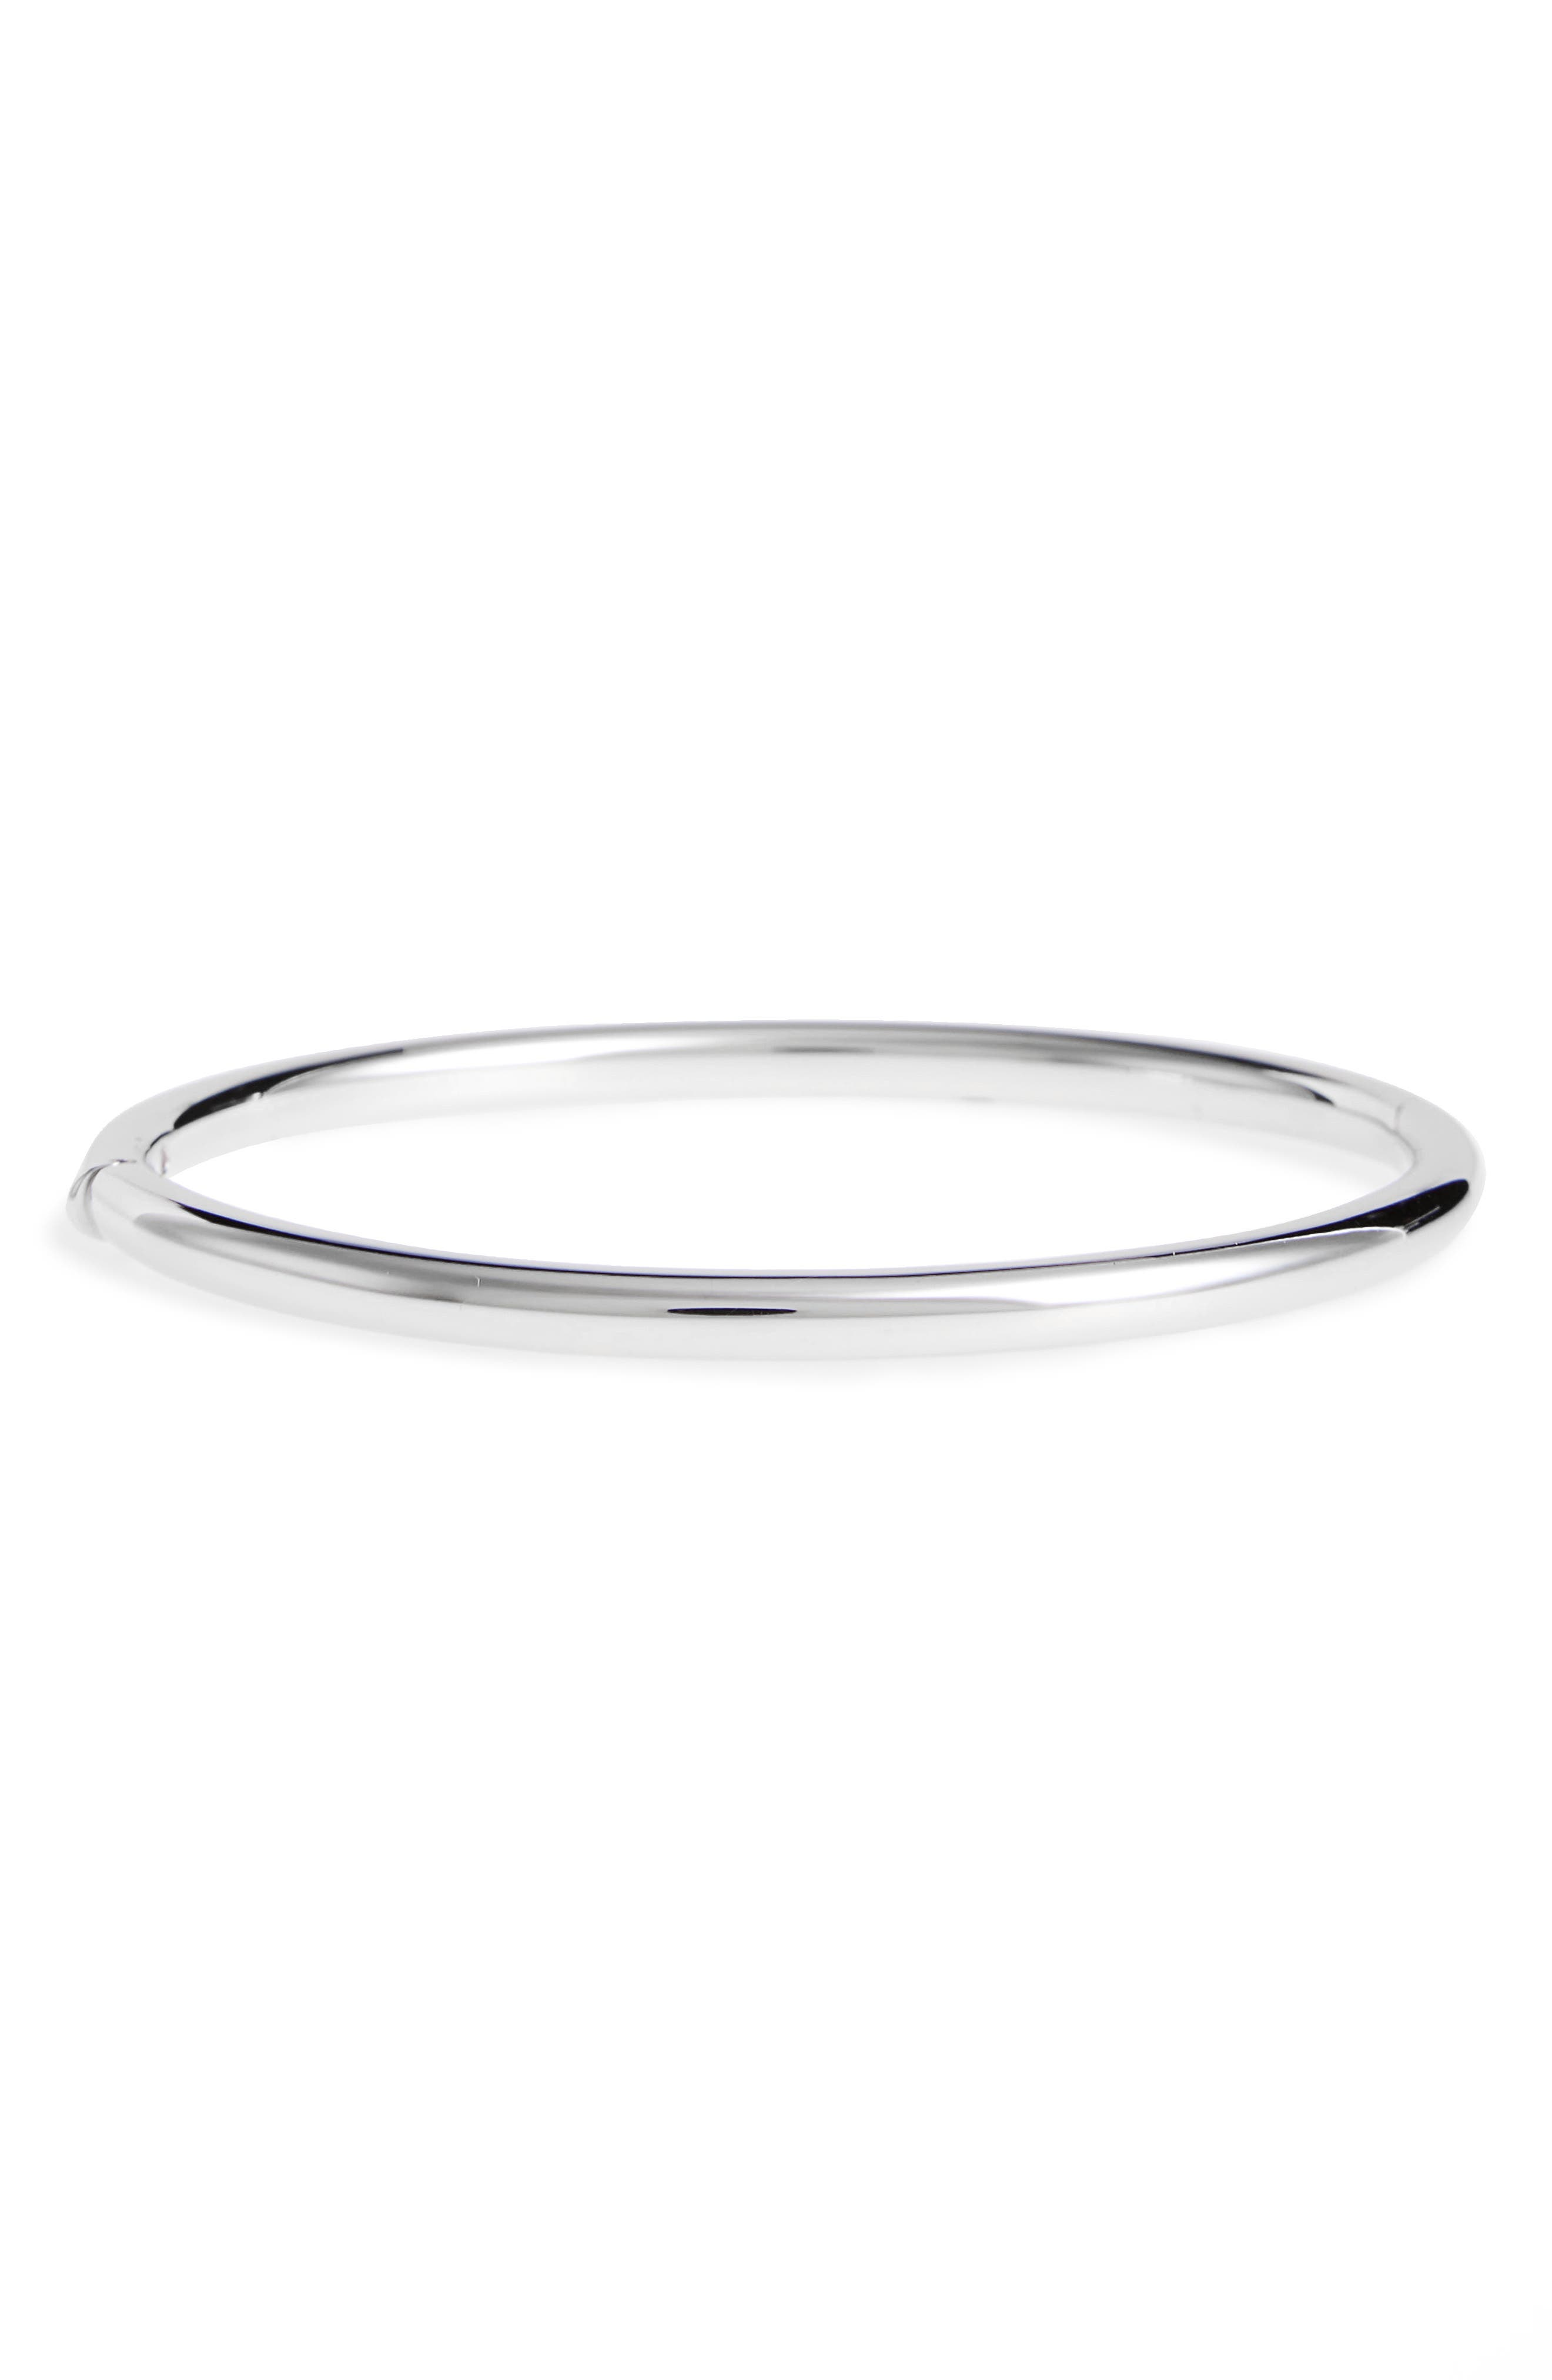 ROBERTO COIN 18K Gold Bangle Bracelet in White Gold